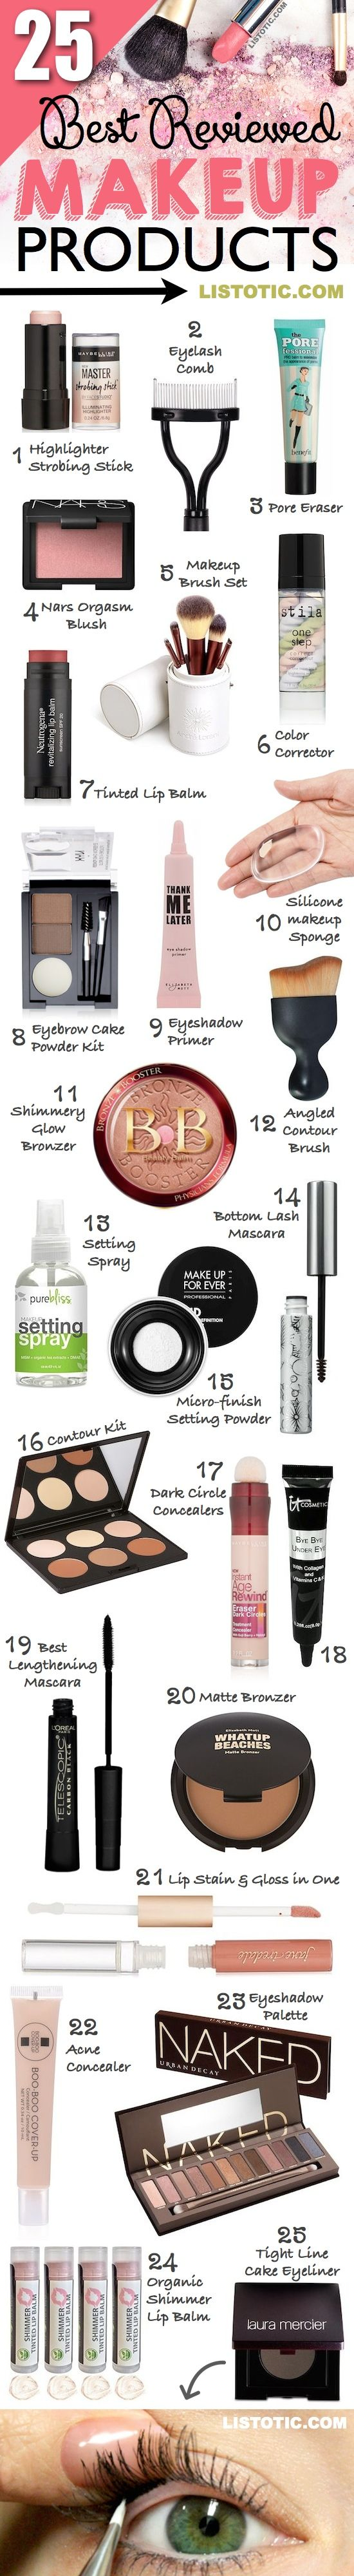 The 25 best reviewed makeup products for beginners and professionals! Most of th...